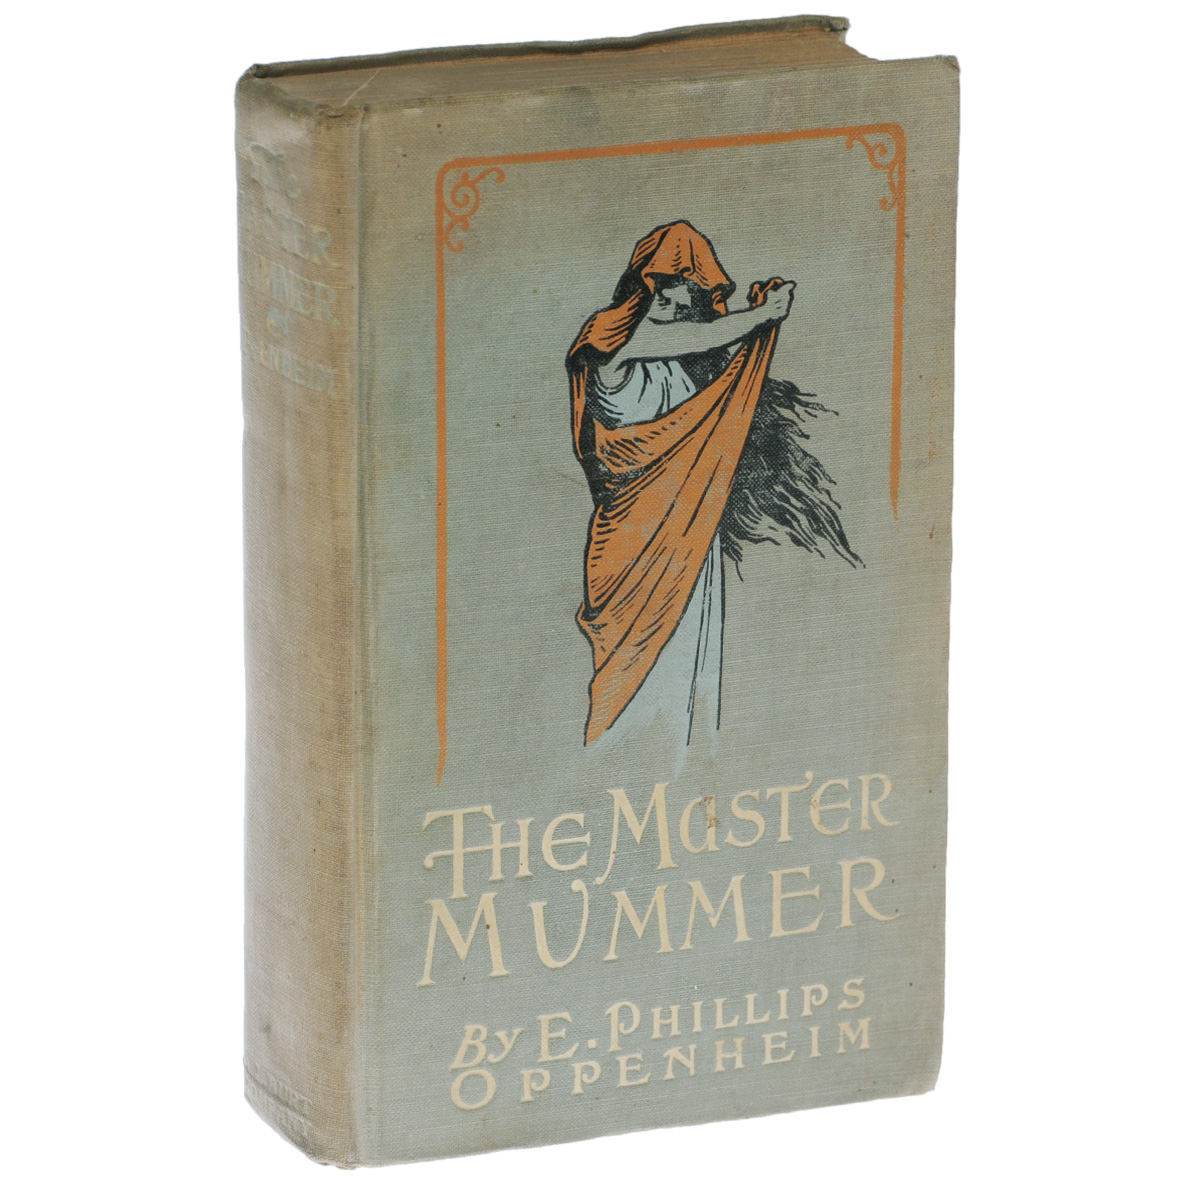 The Master Mummer113140Нью-Йорк, 1904 год. A. L. Burt Company, publishers.Издательский переплет. Потертый корешок. Сохранность хорошая.A best-selling author of novels, short stories, magazine articles, translations, and plays, Oppenheim published over 150 books. He is considered one of the originators of the thriller genre, his novels also range from spy thrillers to romance, but all have an undertone of intrigue. He also wrote under the name of Anthony Partridge. The Master Mummer begins: Sheets of virgin manuscript paper littered my desk, the smoke of much uselessly consumed tobacco hung about the room in a little cloud. Many a time I had dipped my pen in the ink, only to find myself a few minutes later scrawling ridiculous little figures upon the margin of my blotting-pad. It was not at all an auspicious start for one who sought immortality.Издание не подлежит вывозу за пределы Российской Федерации.